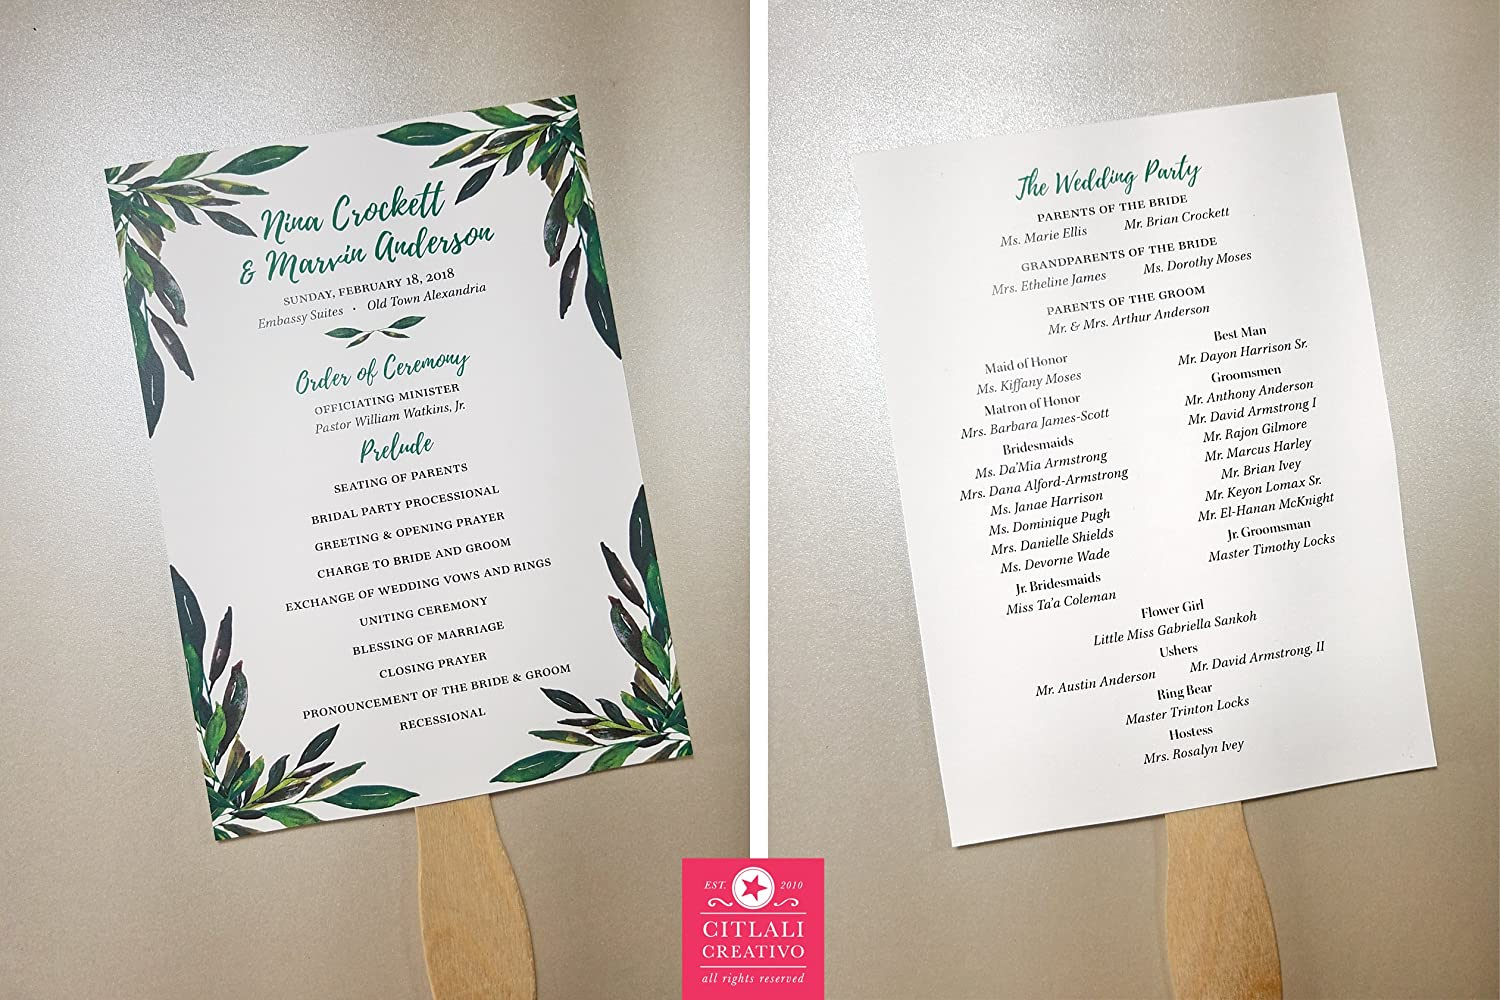 10qty Garden Green Foliage Wedding Programs with Wooden Handle